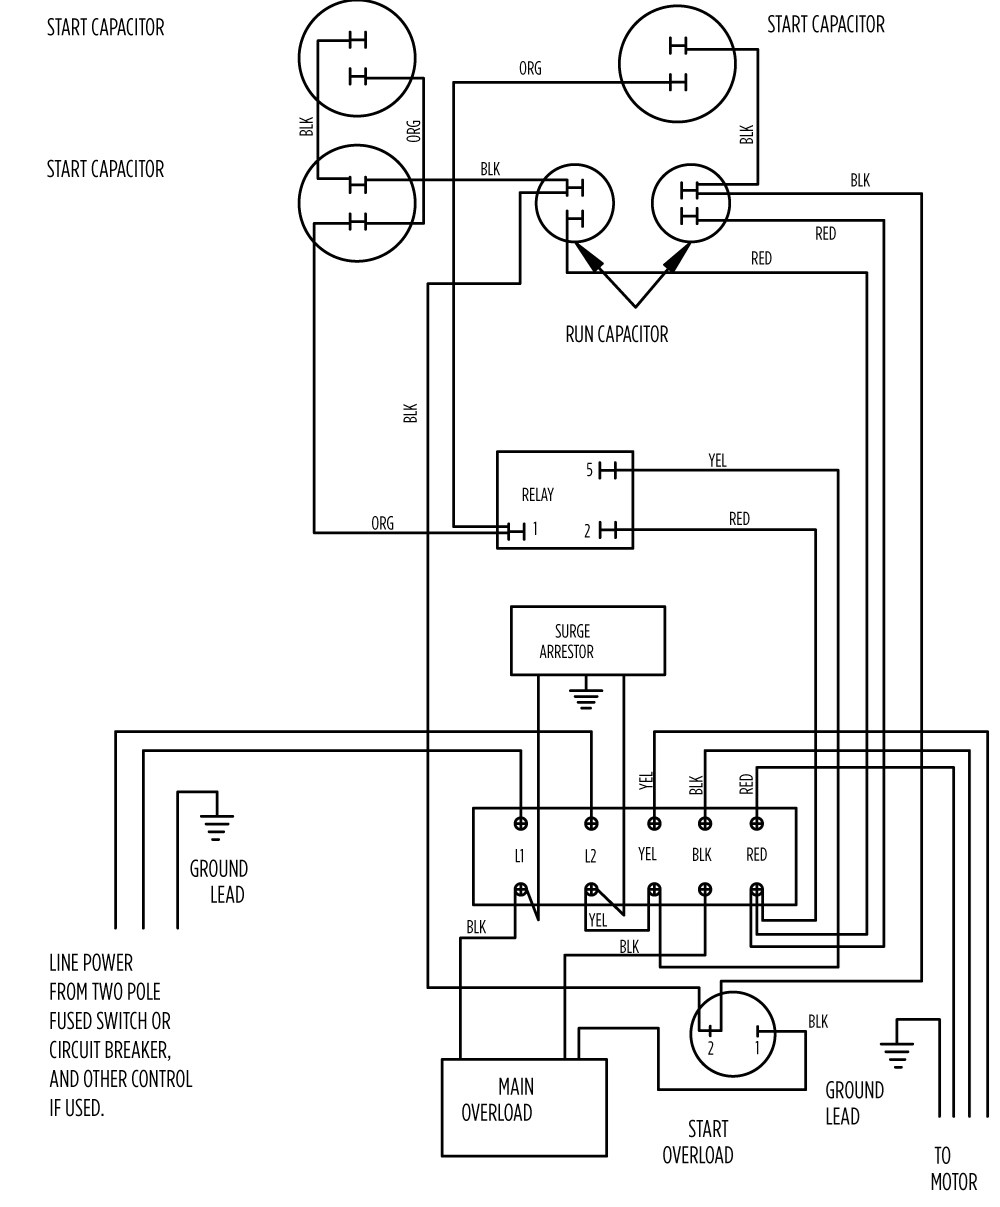 10 hp standard 282 202 9210 or 282 202 9230_aim gallery?format=jpg&quality=80 aim manual page 57 single phase motors and controls motor motor wiring diagram at soozxer.org